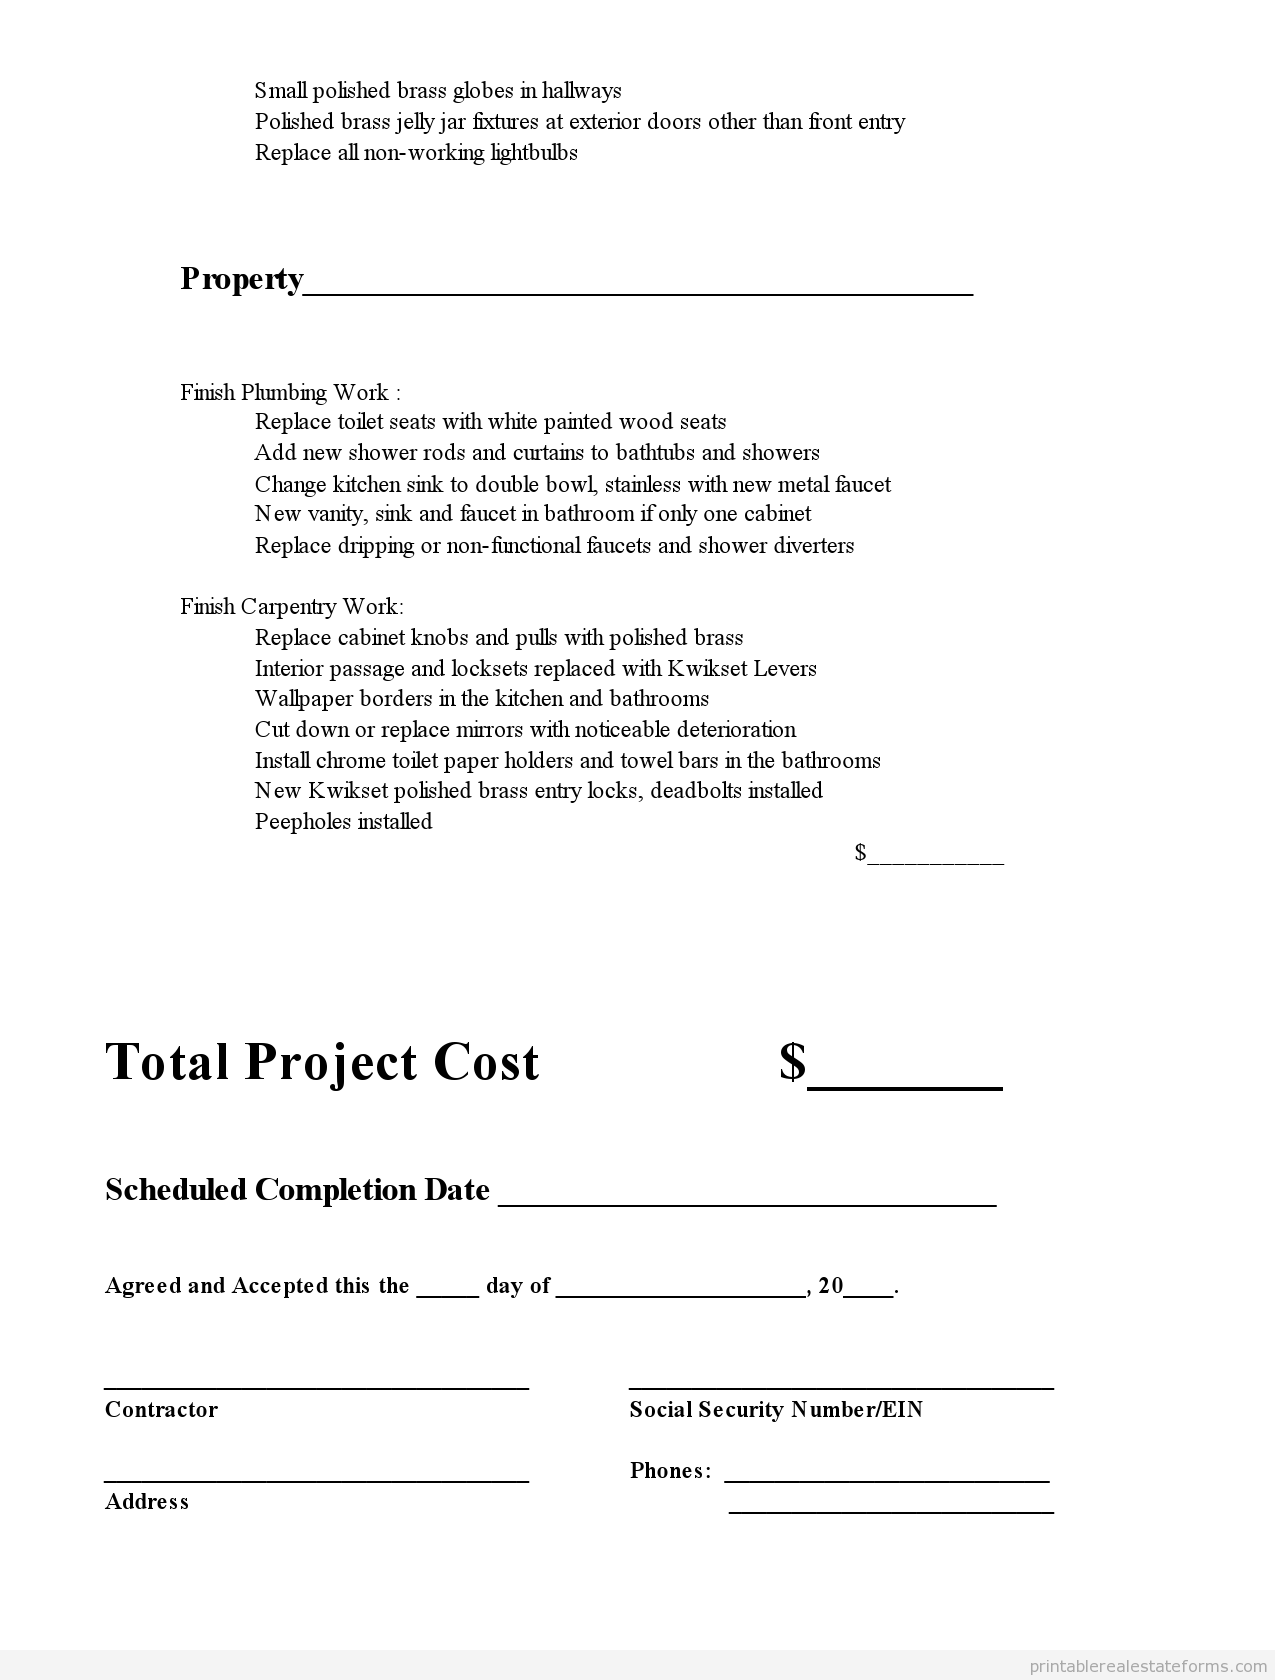 Printable Subcontractor Agreement Template 2015 Sample Forms 2015